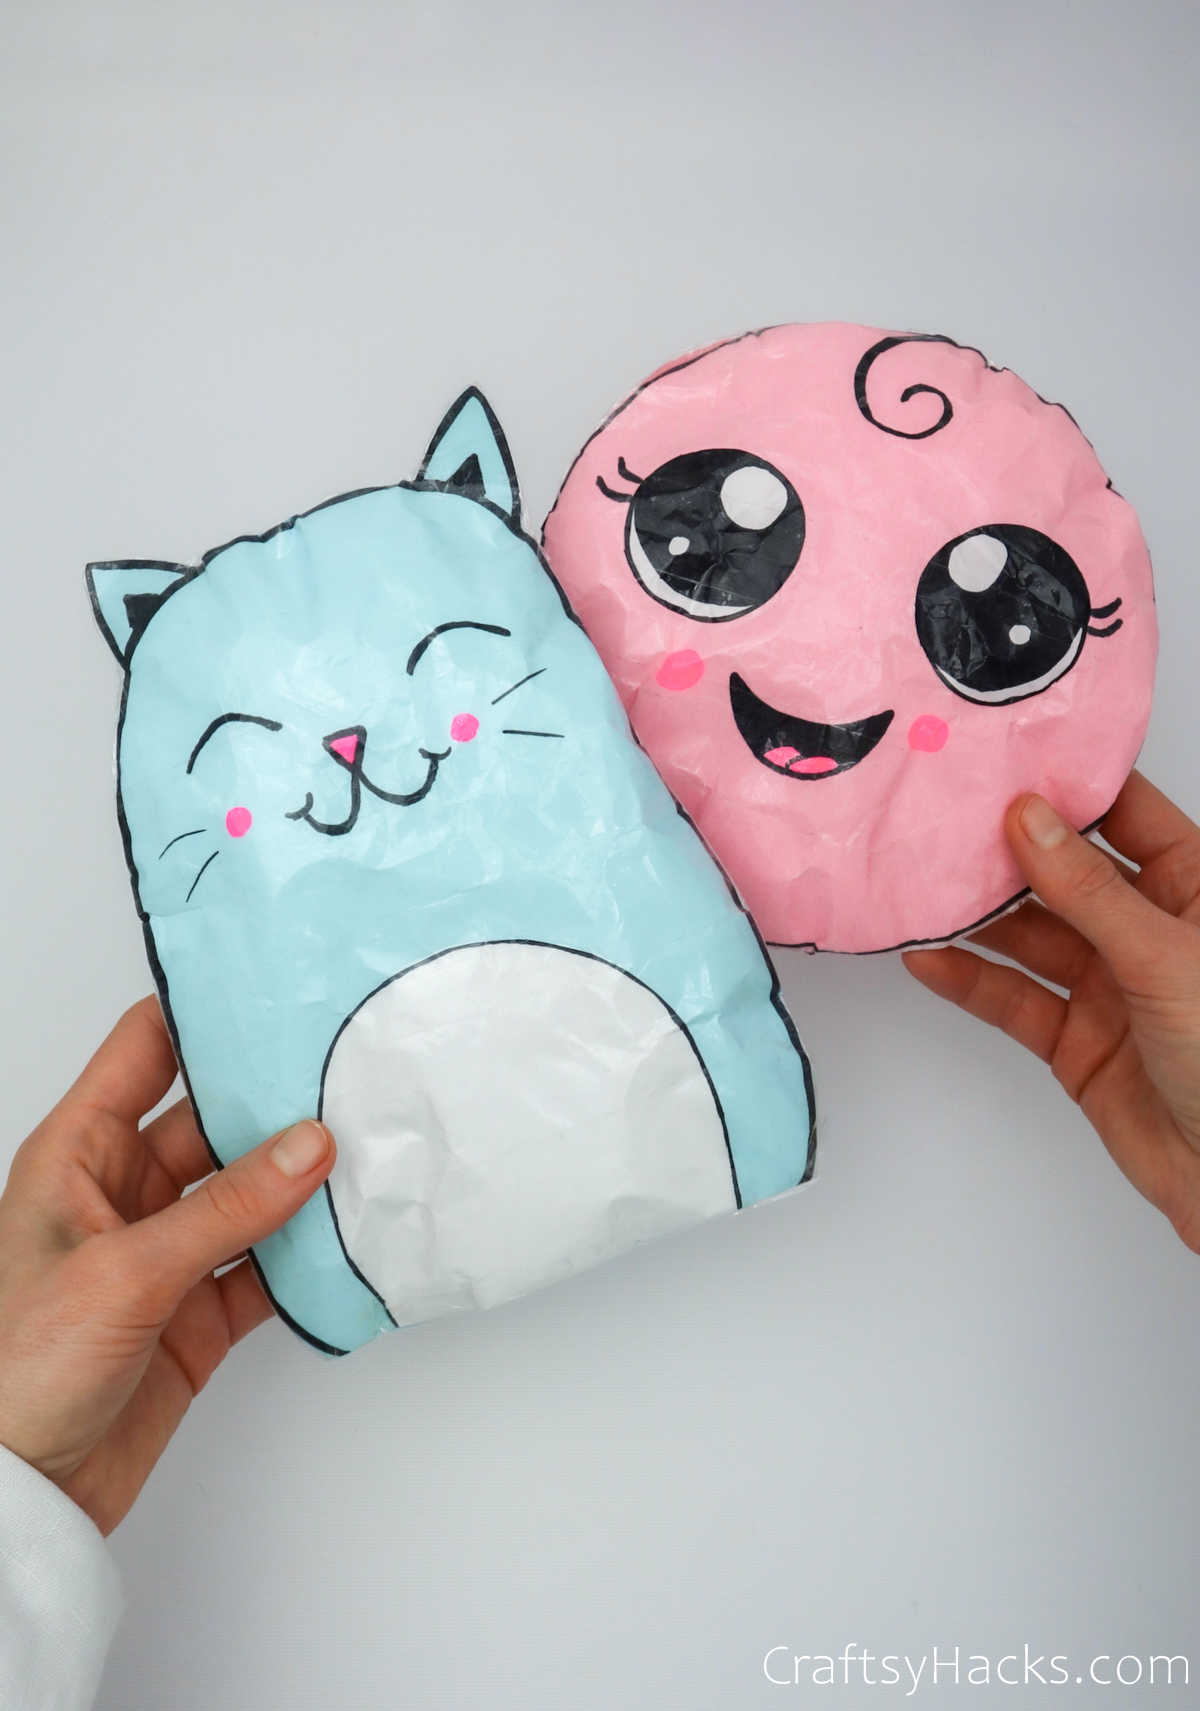 blue and pink paper squishies